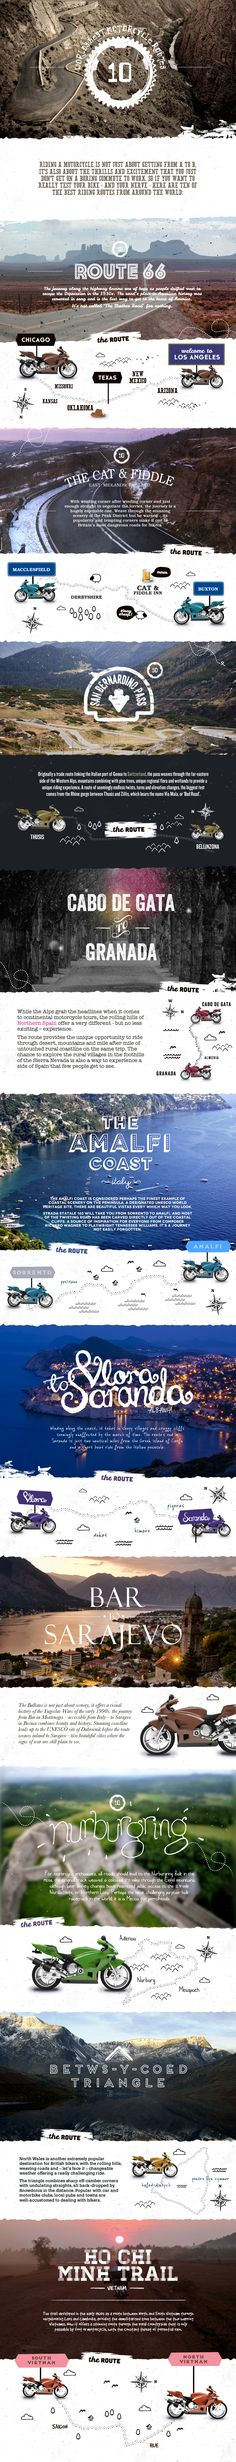 World's Best Motorcycle Routes Infographic